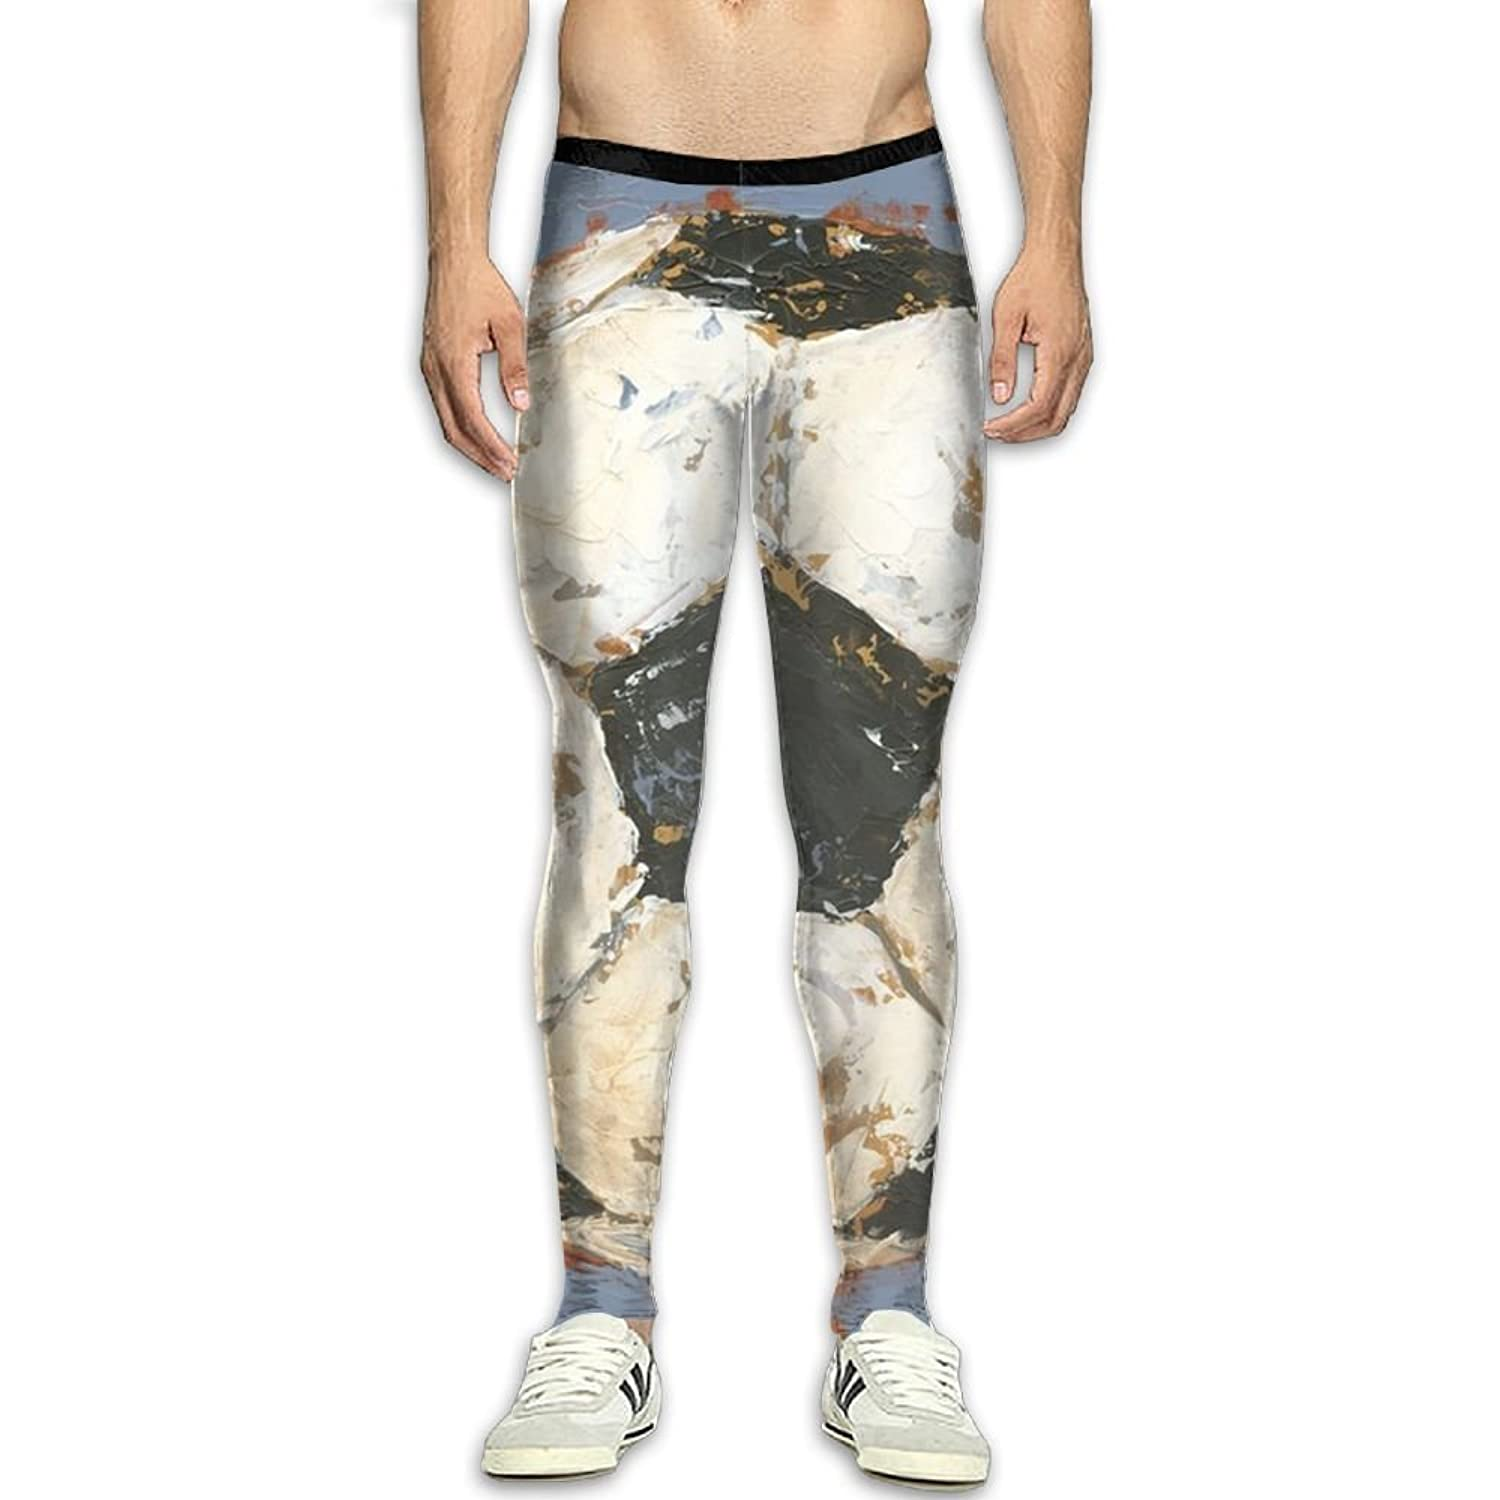 a9e67ff600e230 Olivefox Fit Clothes UV for Men Compression Sports and Fitness Tights  Workout Pants Breathable Football Cool